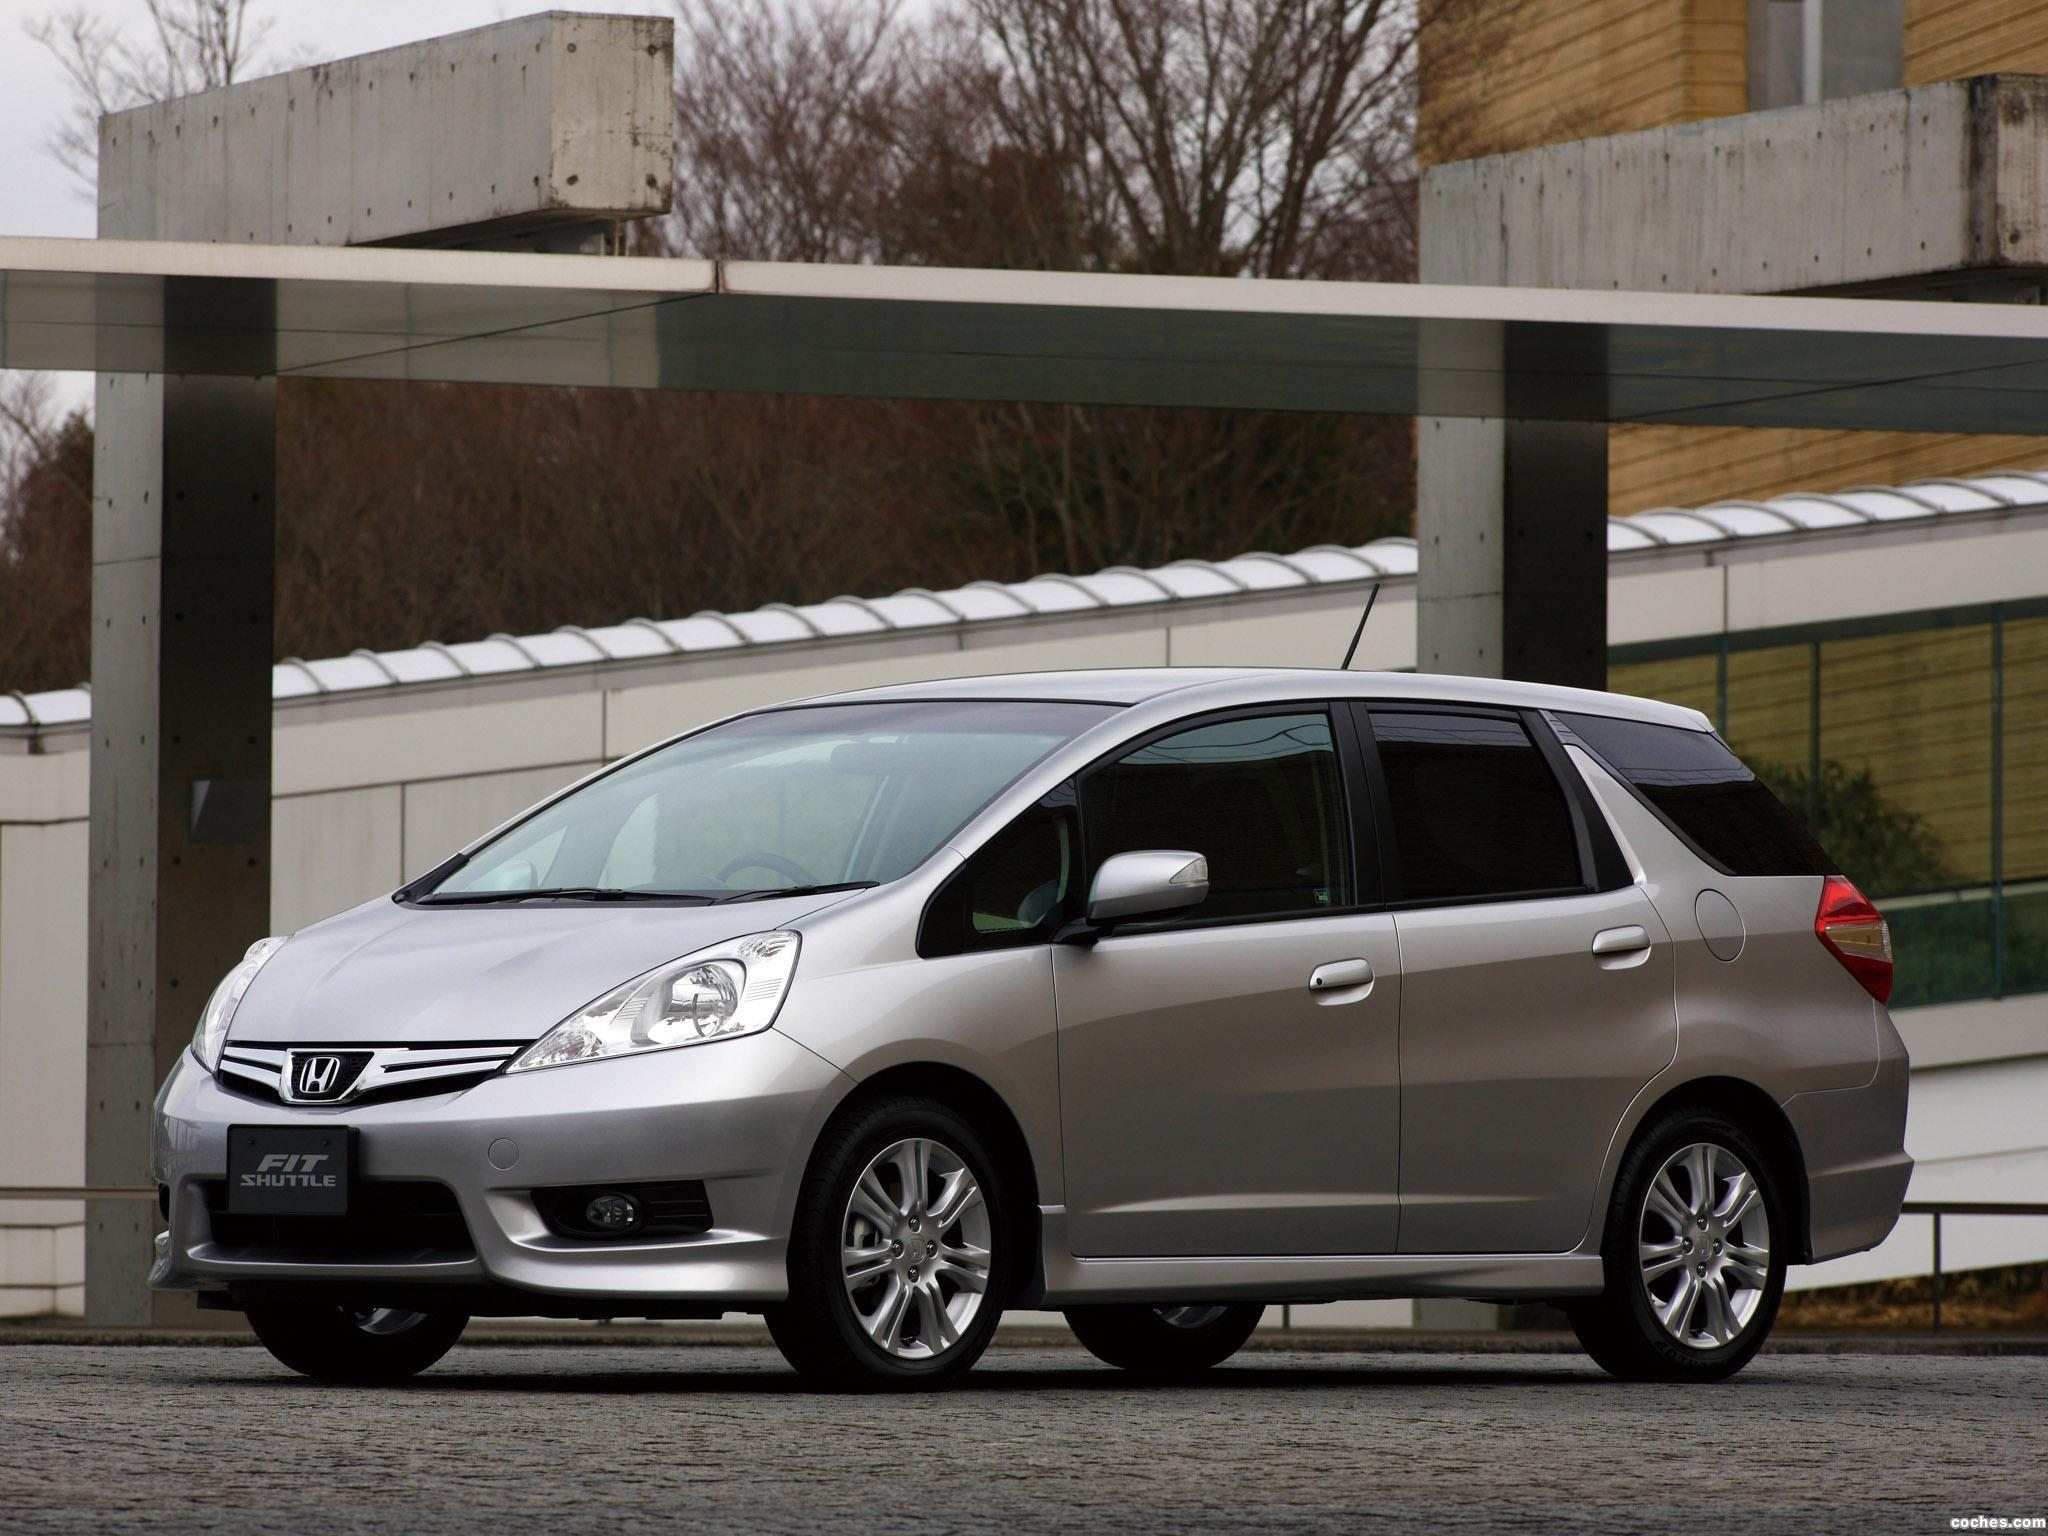 Foto 0 de Honda Fit Shuttle 2011